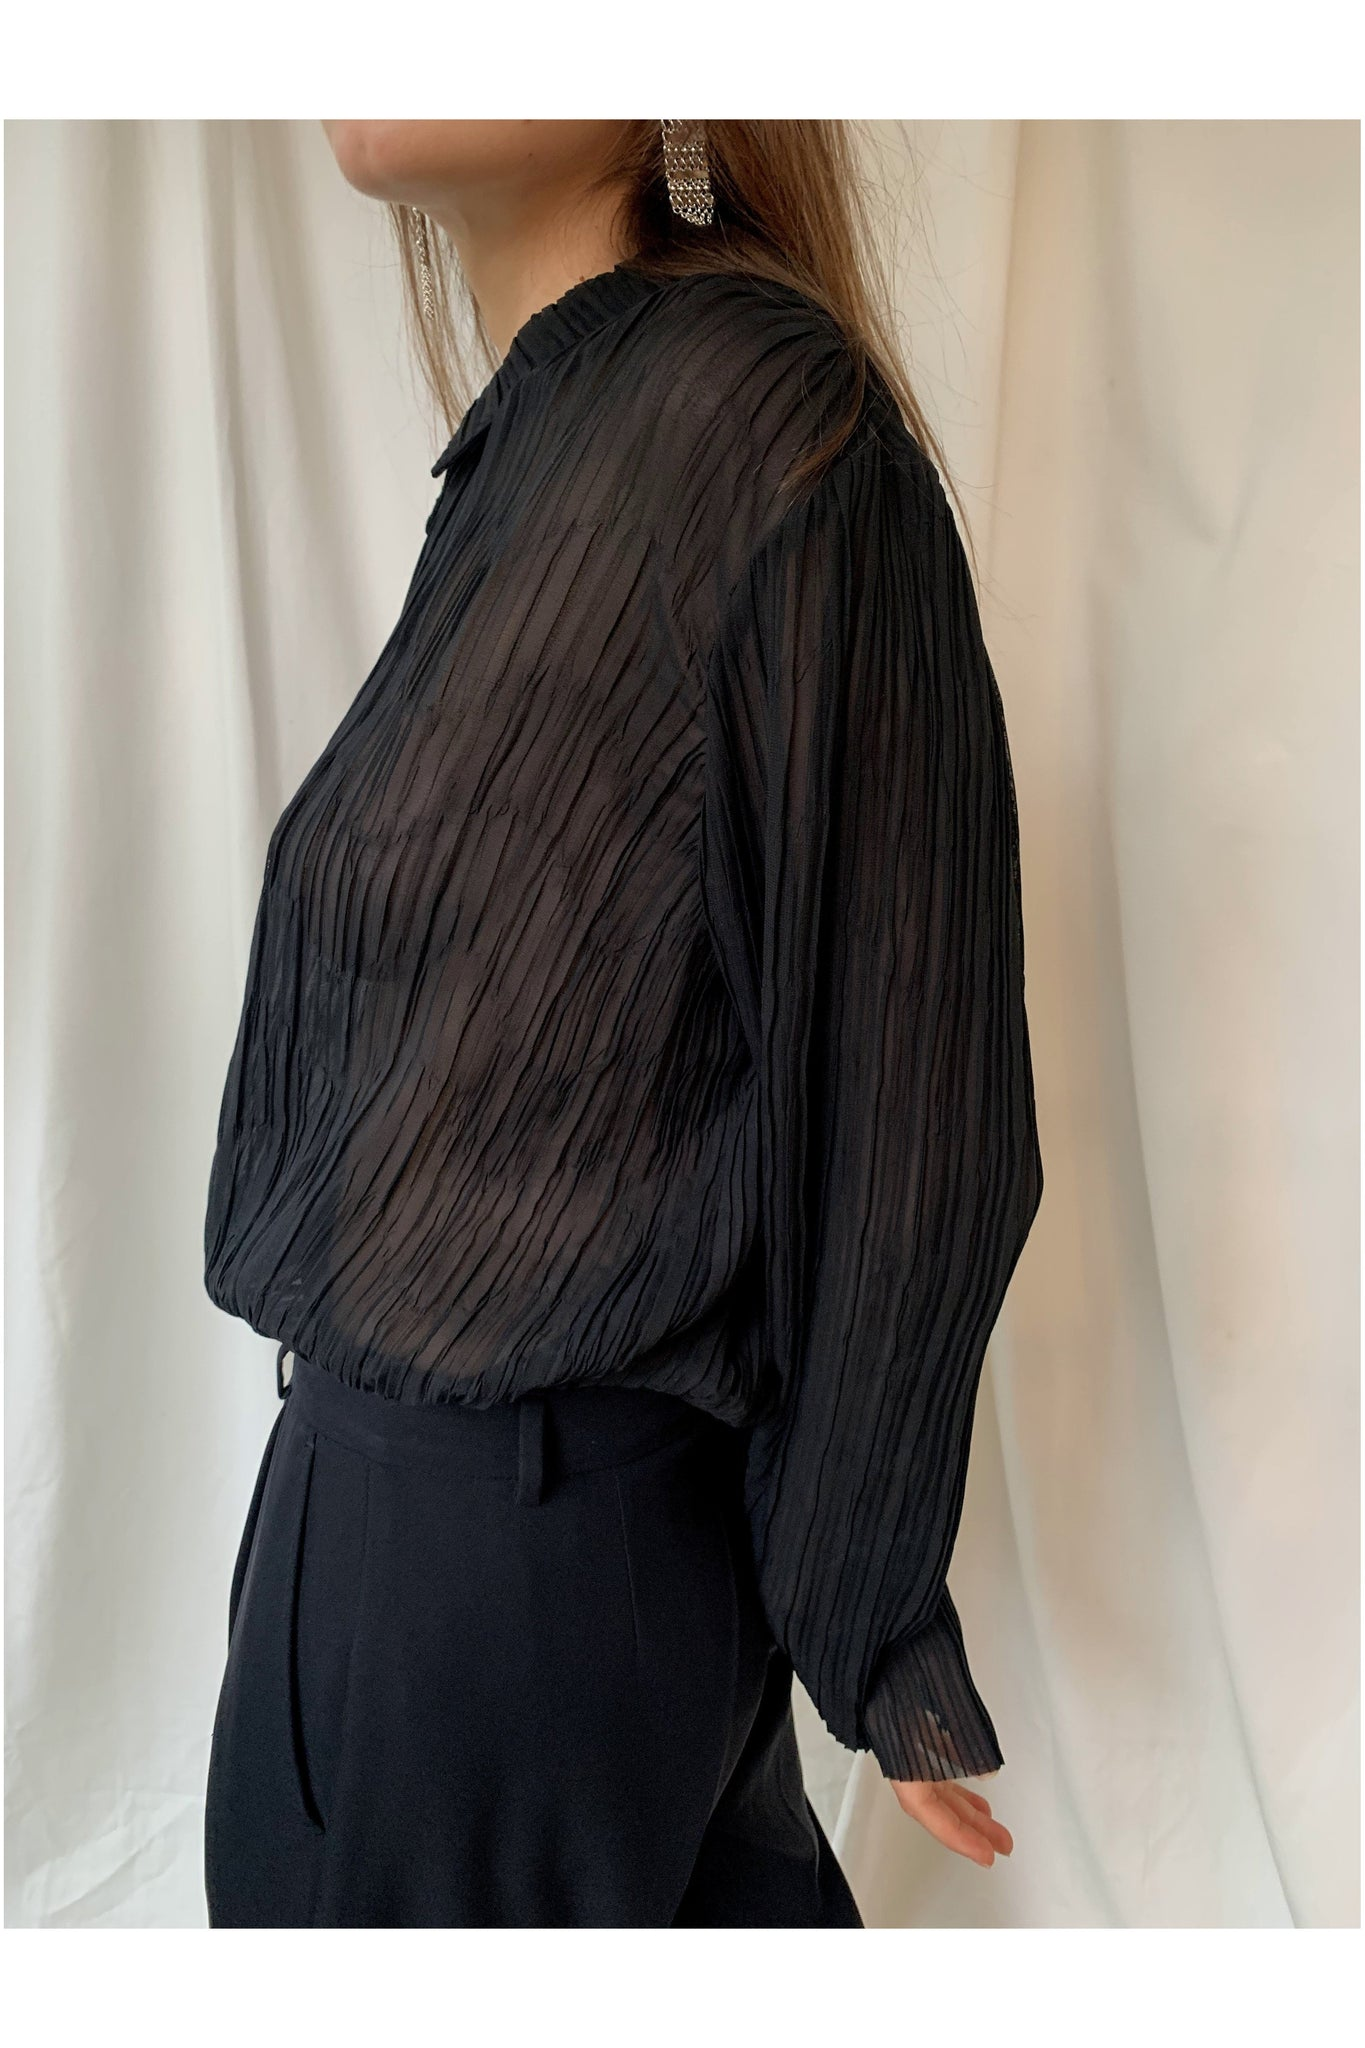 HOPE BLACK PLEATET SHIRT WITH EXTRA LONG SLEEVES - BEYOND STUDIOS